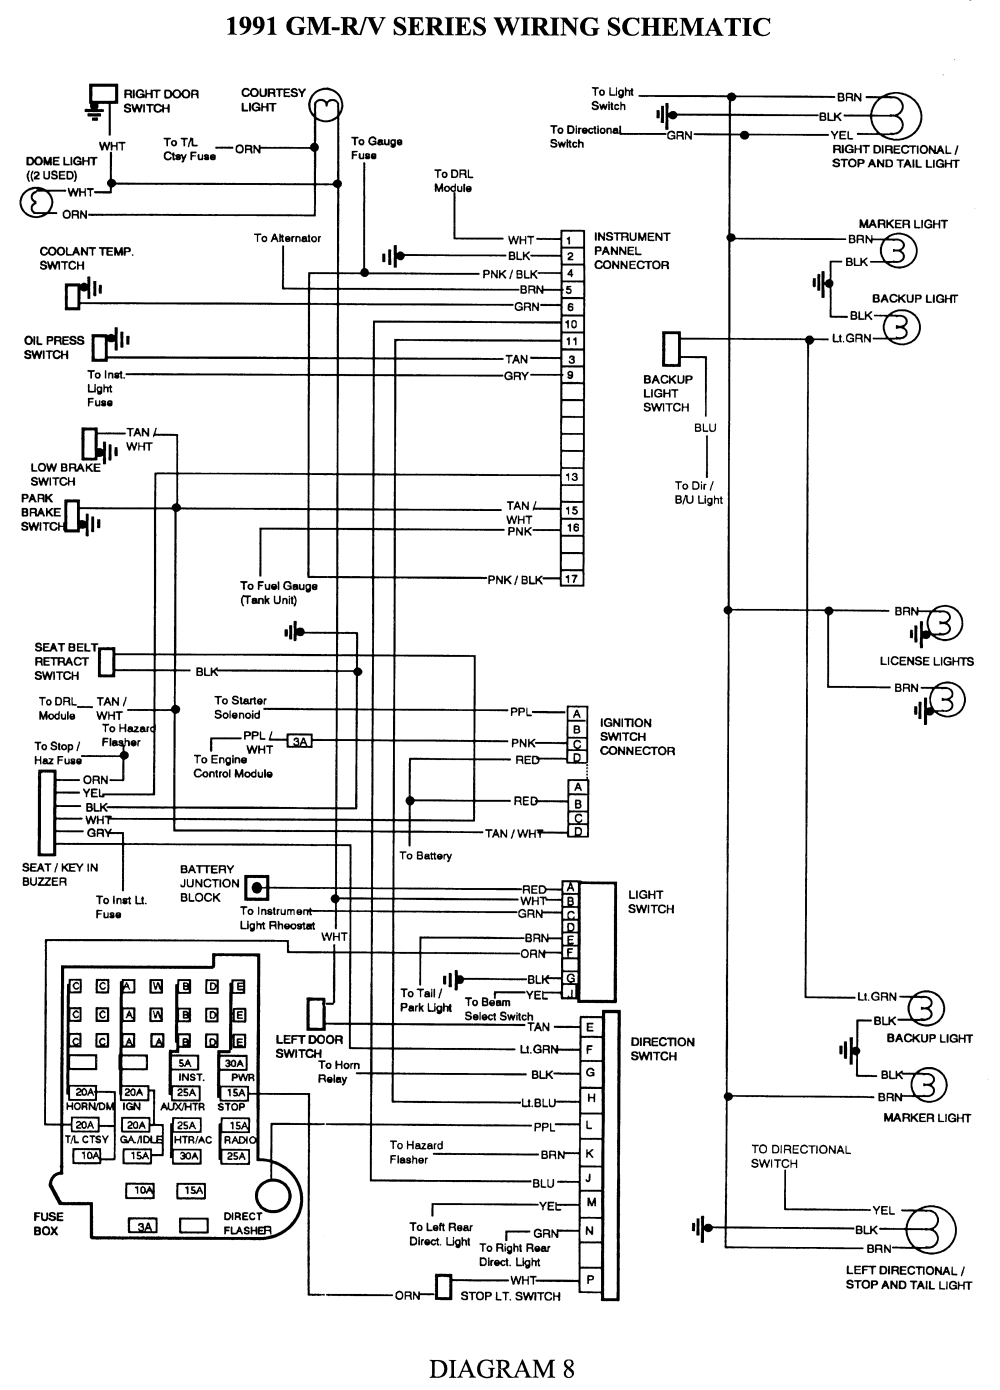 1982 Blazer Wiring Diagram